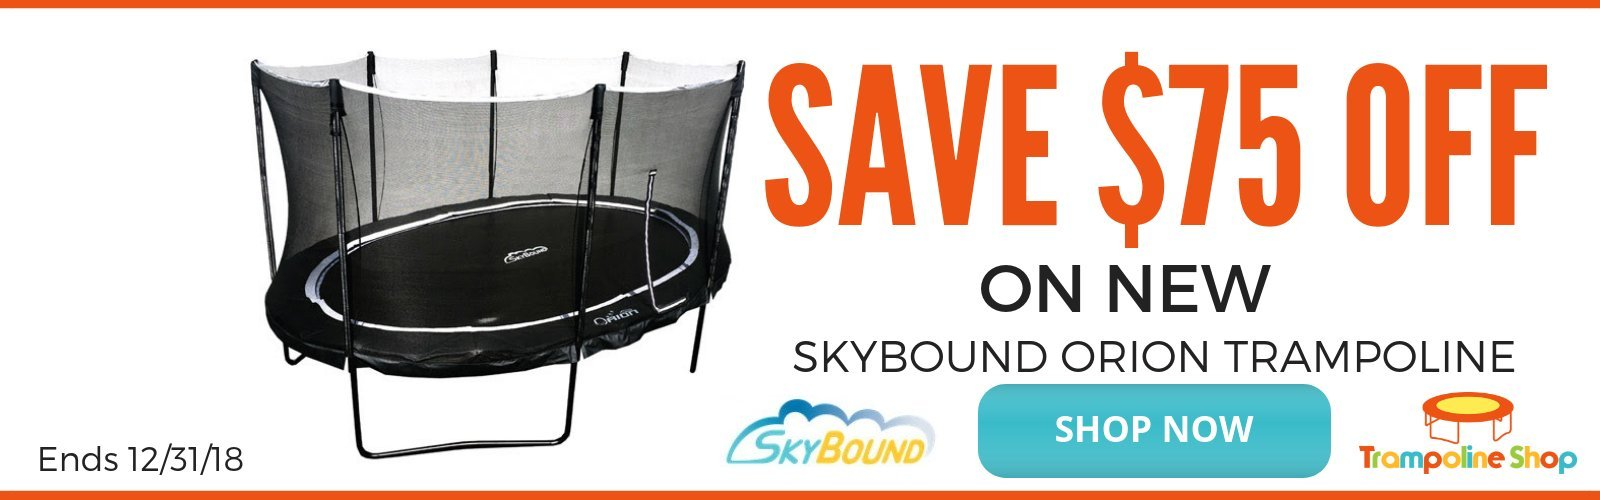 FREE LADDER VULY PROMOTION | THE TRAMPOLINE SHOP